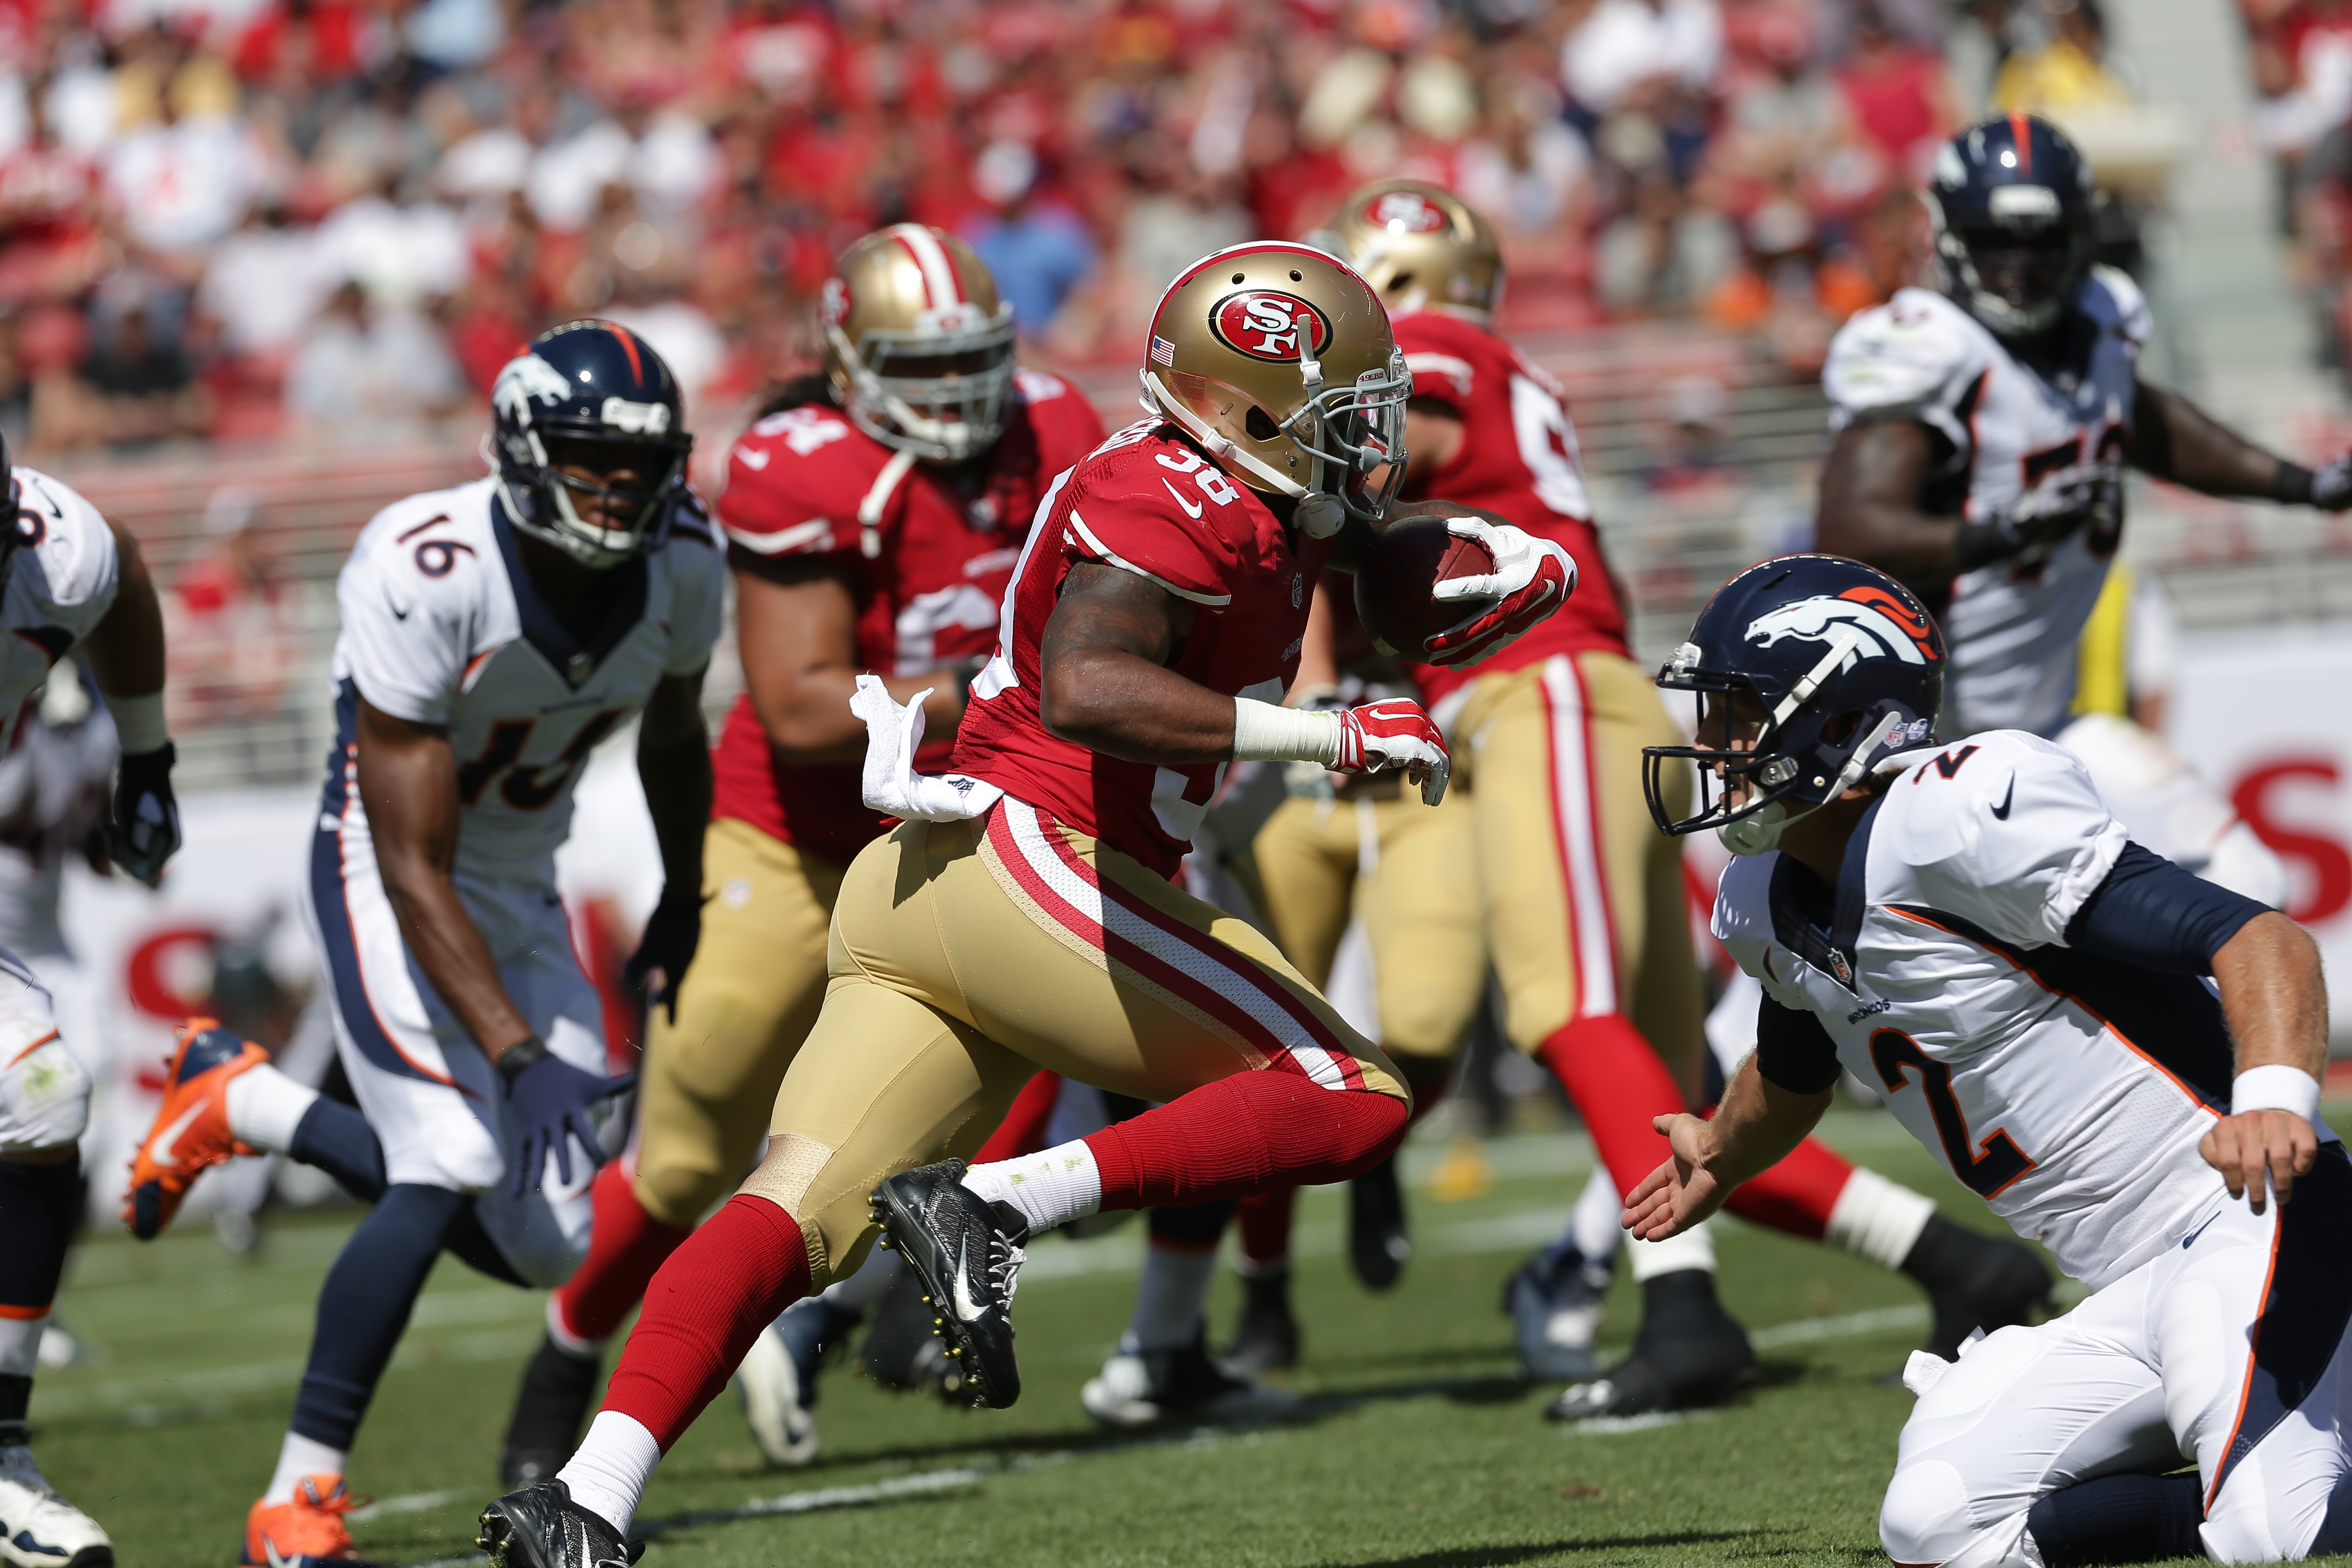 861e742d1419 A player in red and gold uniform running in middle of a game, where  opponents